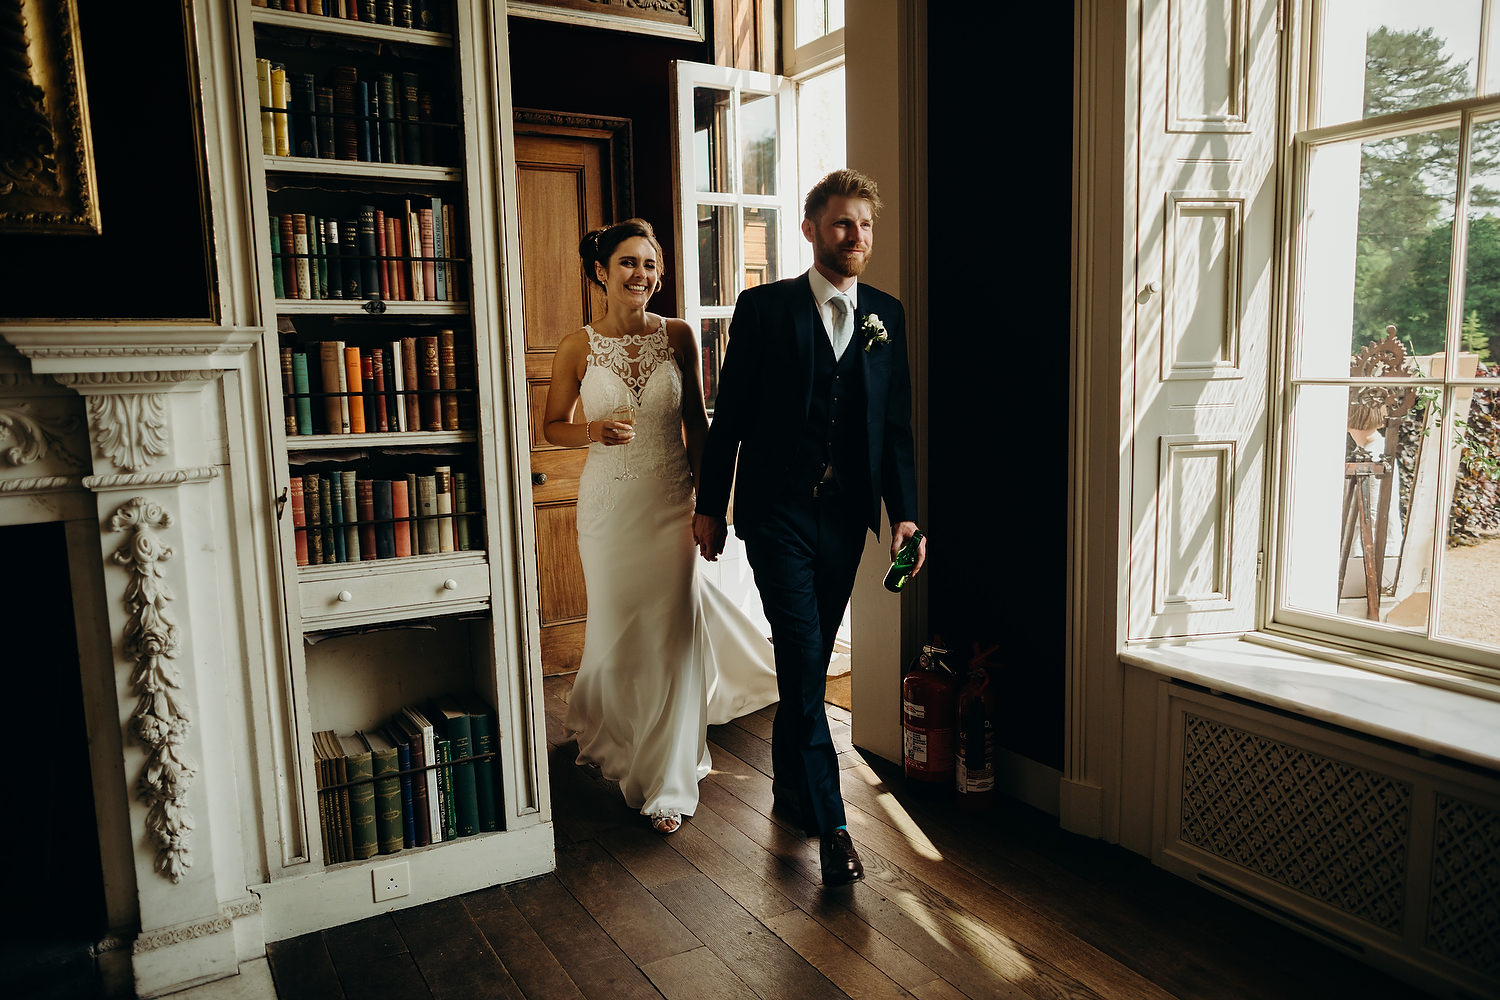 Bride and groom walk into the old library room